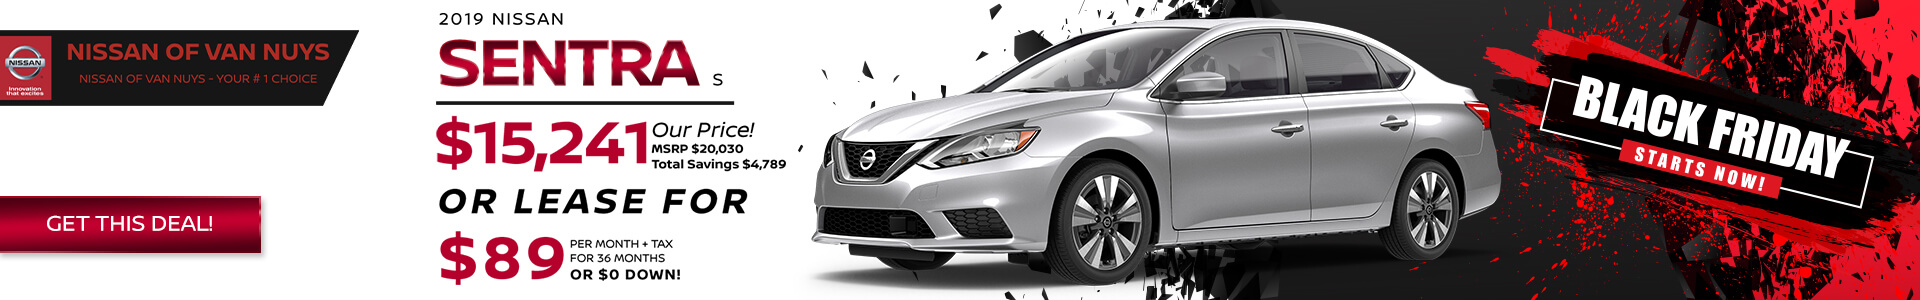 Nissan Sentra - Lease for $139